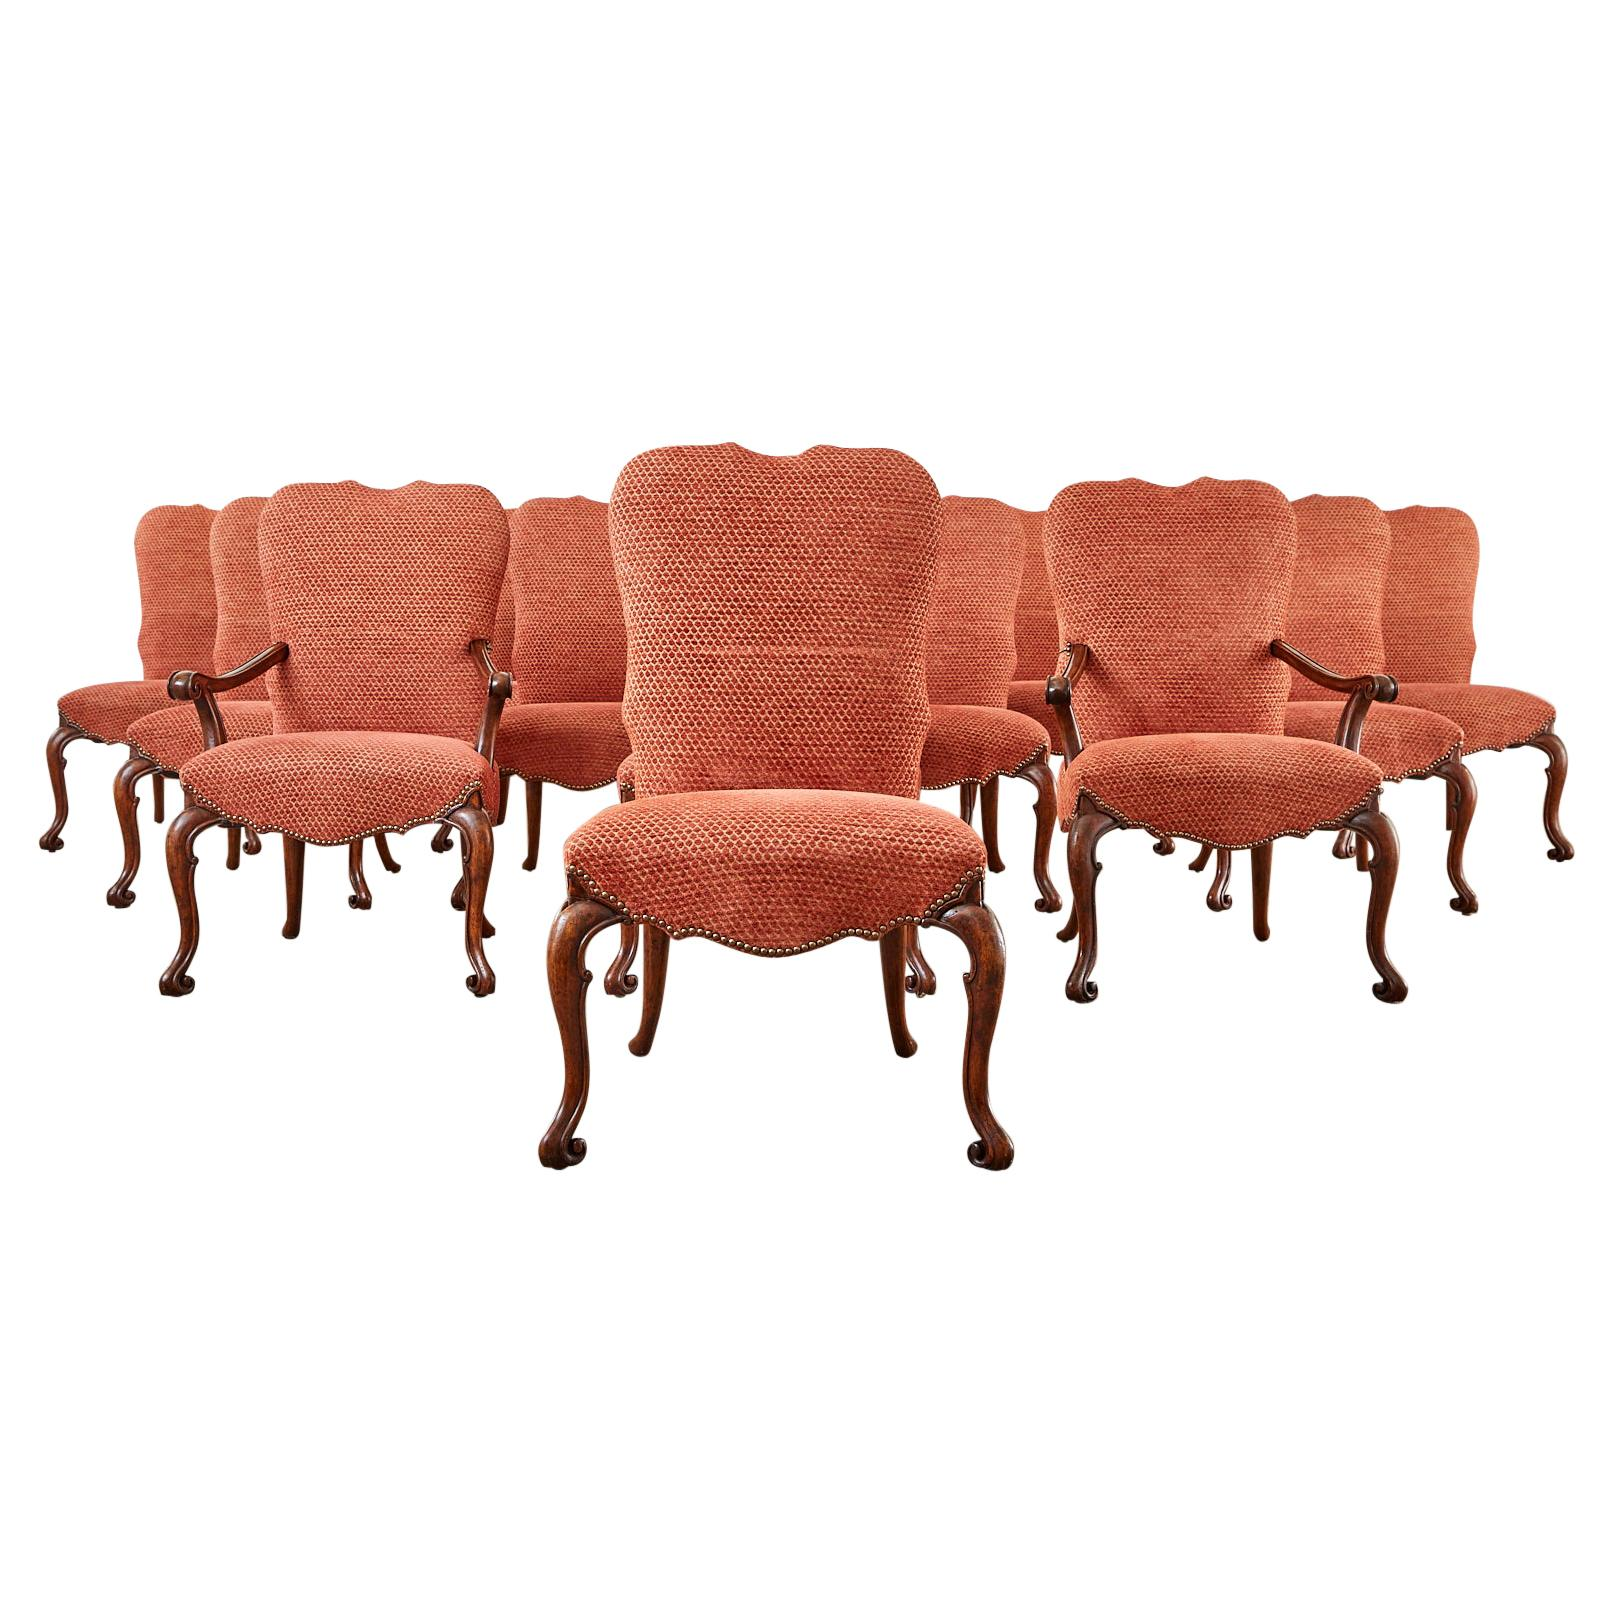 Set of Twelve Therien Studio Baroque Style Dining Chairs